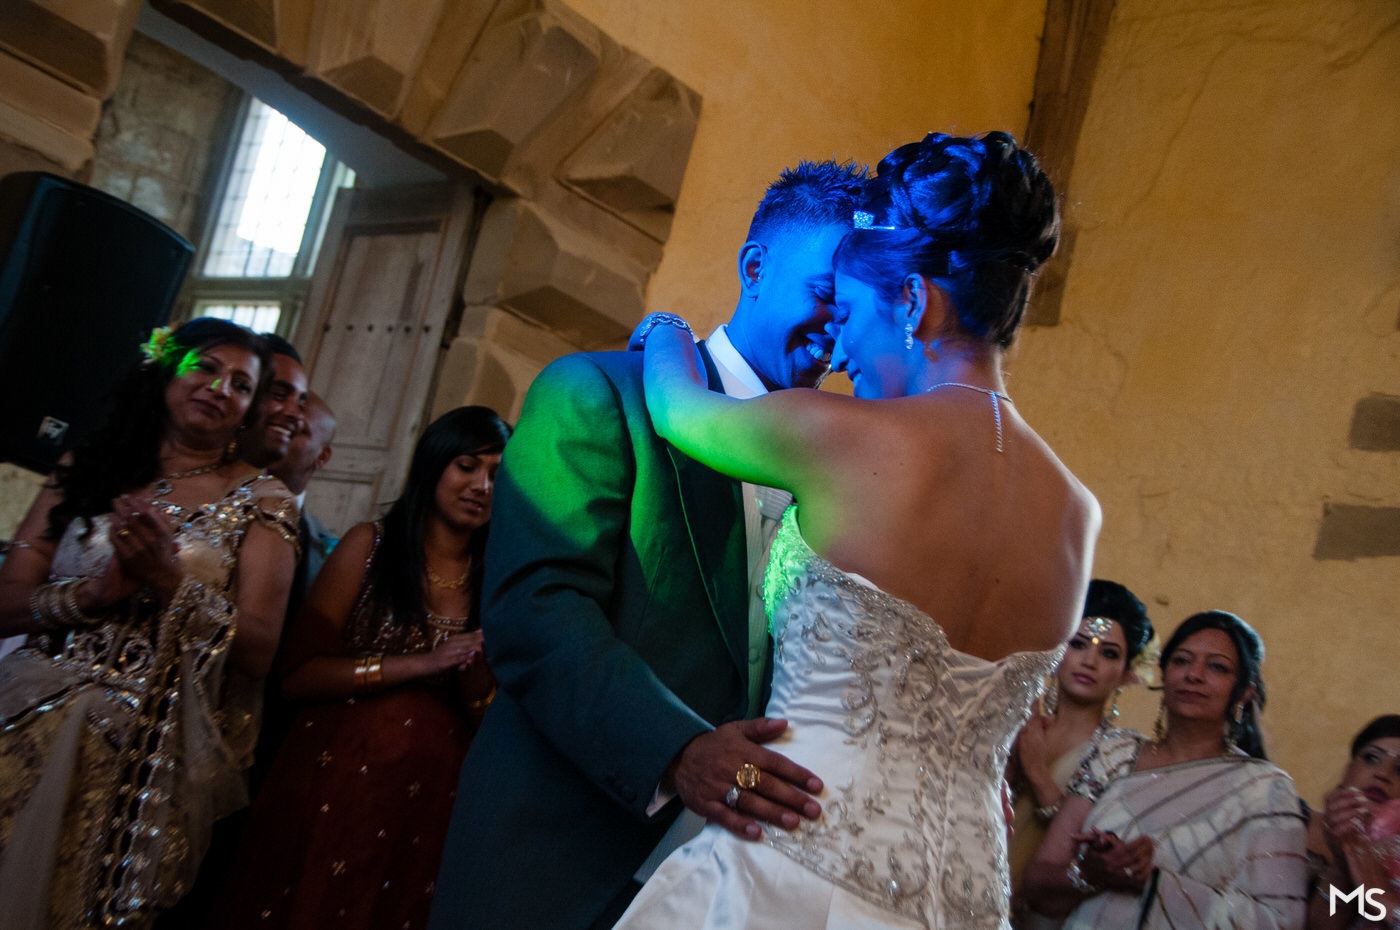 Bolsover-Castle-Indian-wedding - 34_DSC_5857.jpg